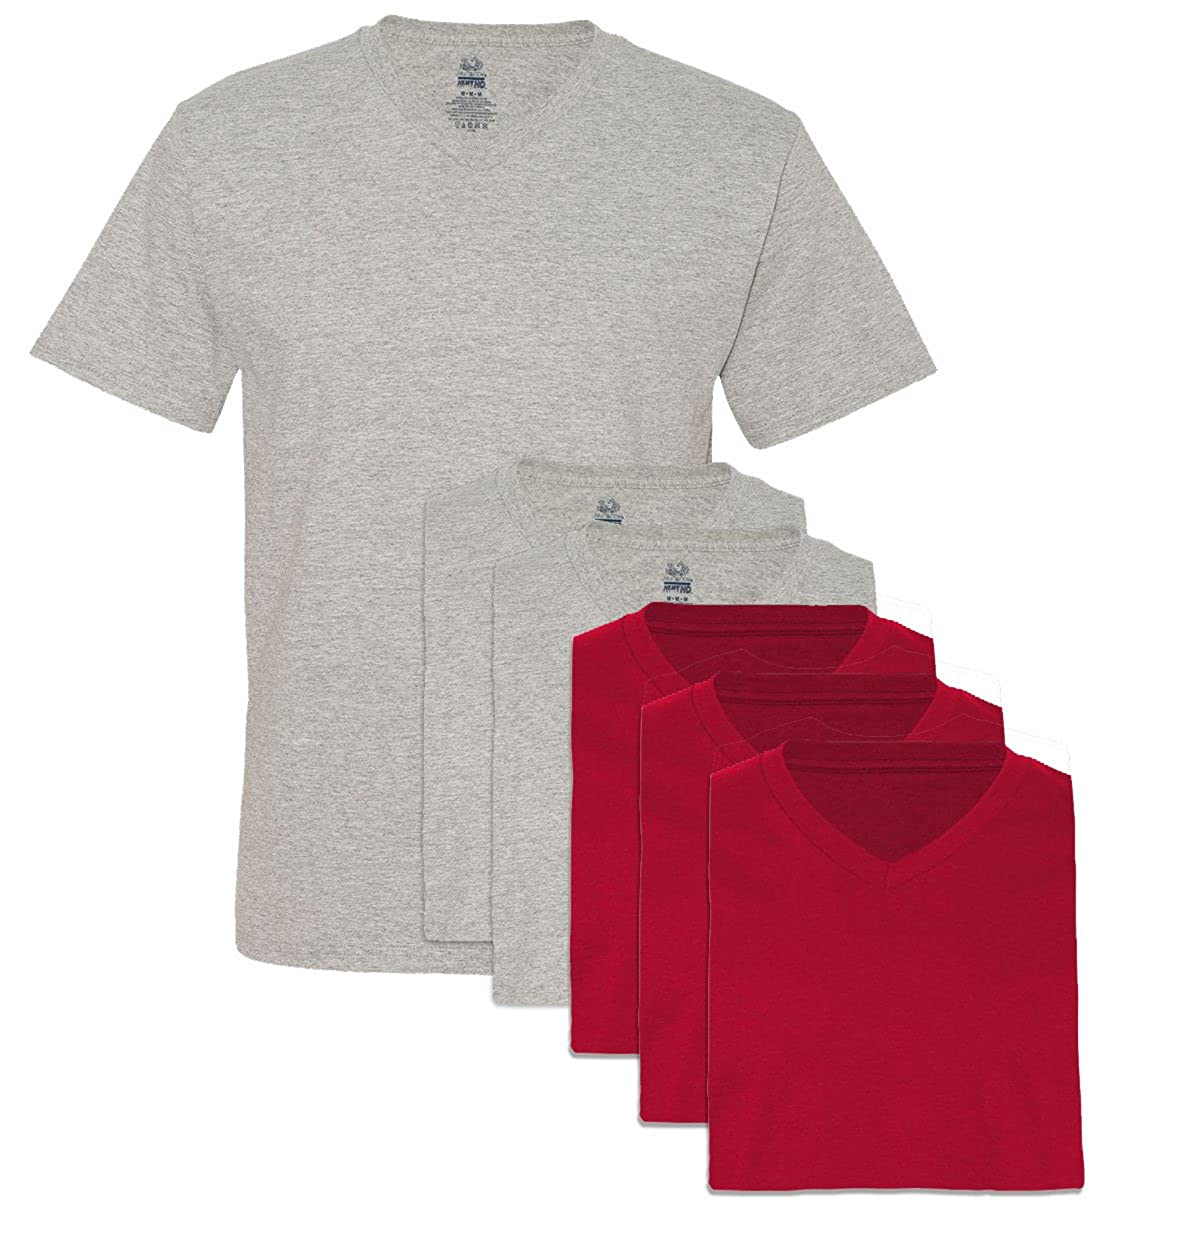 Fruit of the Loom Mens 6 Pack V-Neck T-Shirt XL 3 Red 3 Athletic Heather